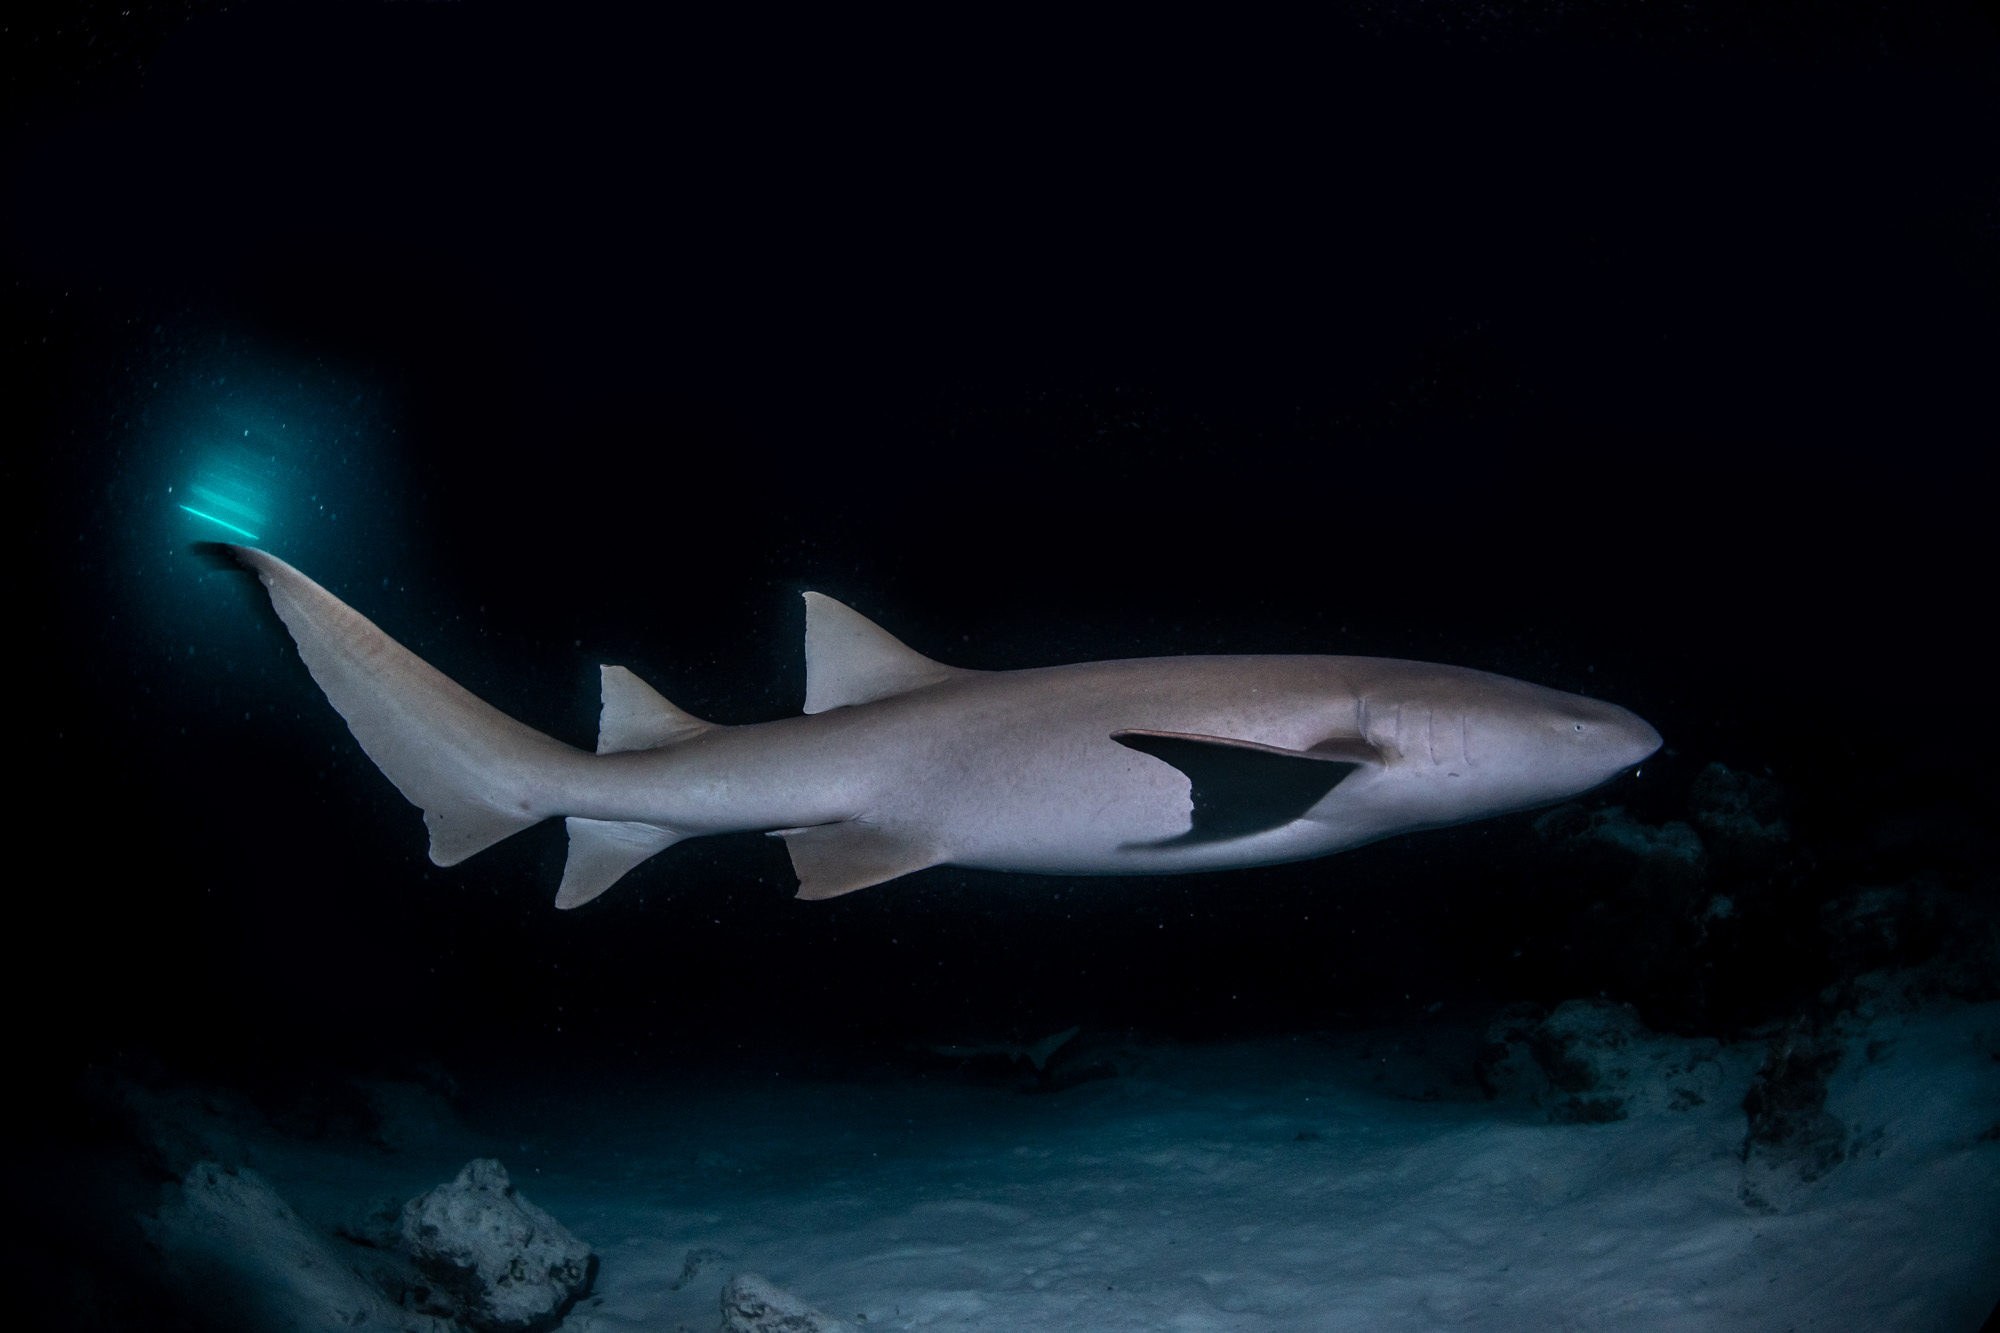 Shark sighting while on a night dive in the Maldives.